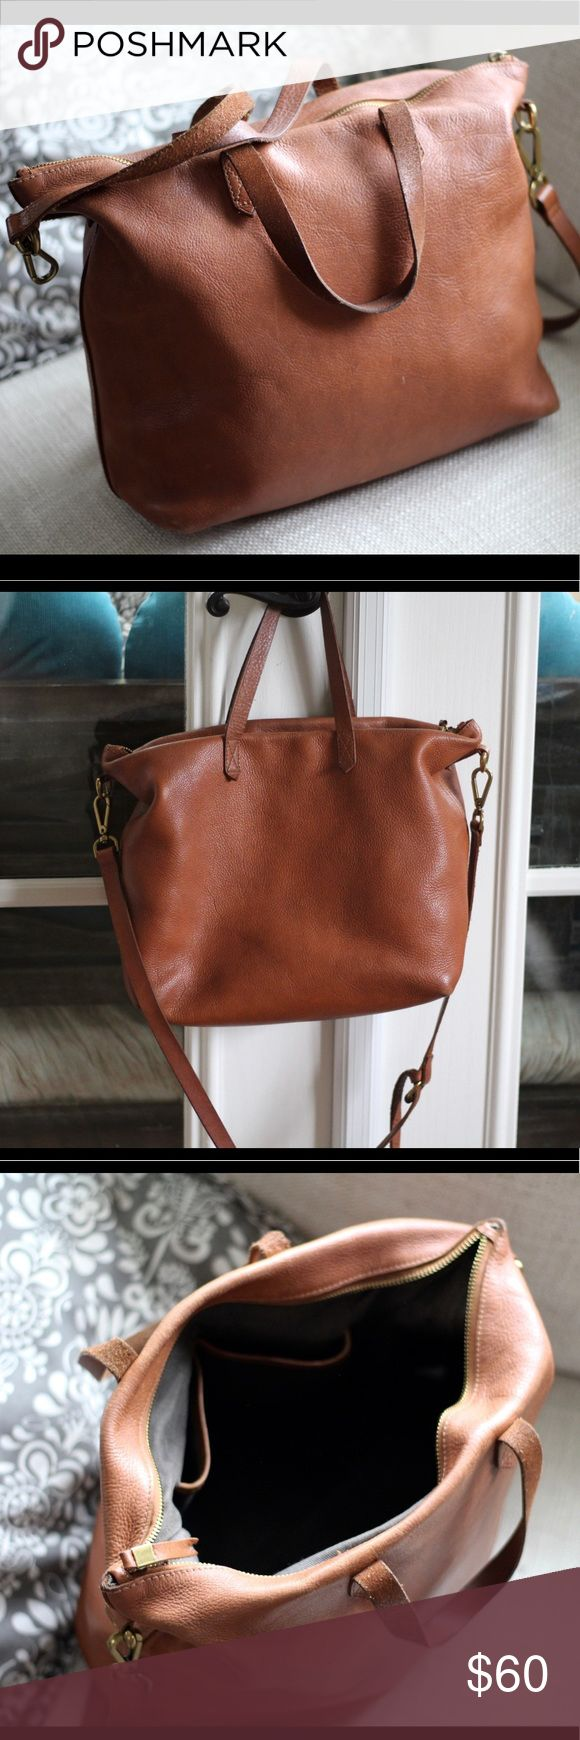 Madewell Zip Transport Tote This bag has signs of wears but still has tons of life left. Leather. Strap drop: 17.25. Handle:4 H:13 x L:15.75 x D:4.5. 3 pockets Madewell Bags Totes